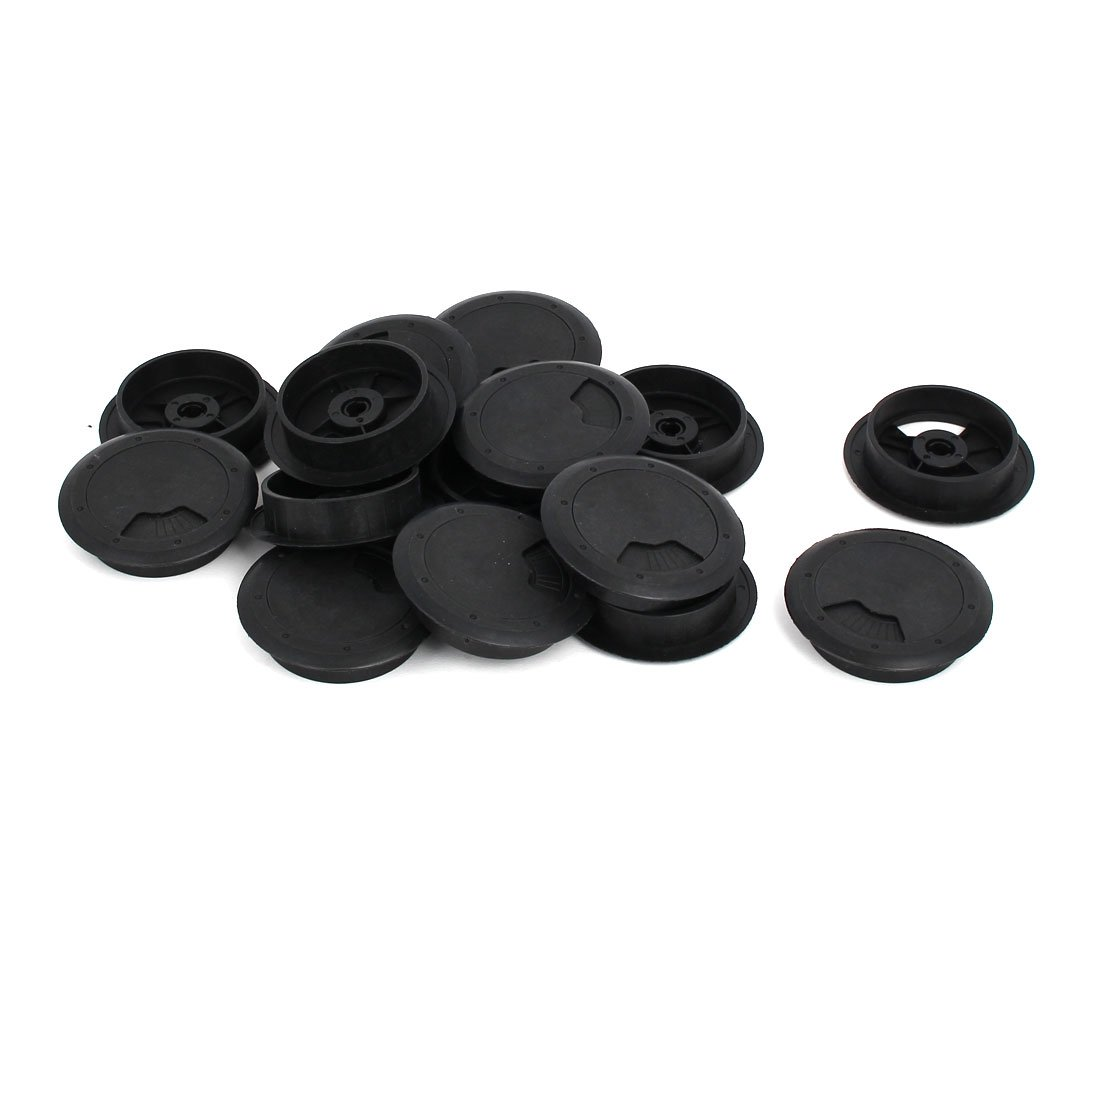 uxcell Computer Desk 60mm Dia Adjustable Grommet Plastic Wire Cable Hole Covers Black 15pcs